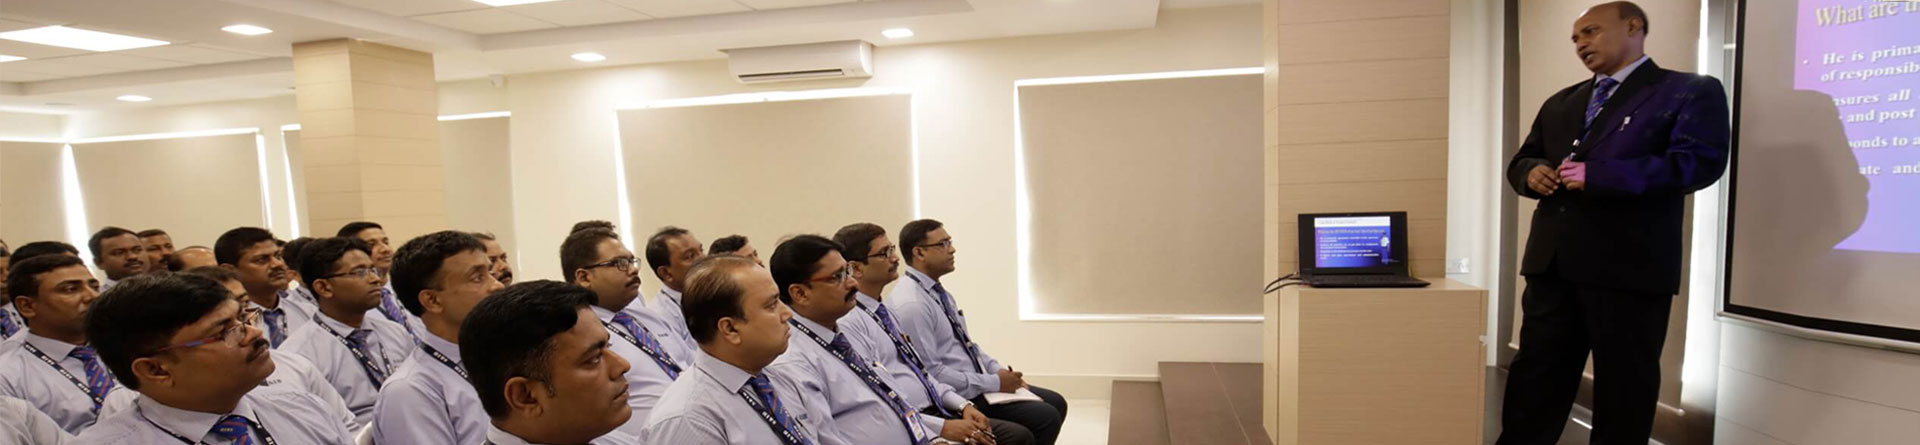 SIB TRAINING - Manpower Outsourcing Payroll Management A Comprehensive Range... Providing Technical and Non-Technical Manpower like Driver, Peon, Skilled and Unskilled Labours, Electrician, Plumbers, etc. Placement of Personnel Online Payroll Management including Compliances Keeping the database in electronic mode